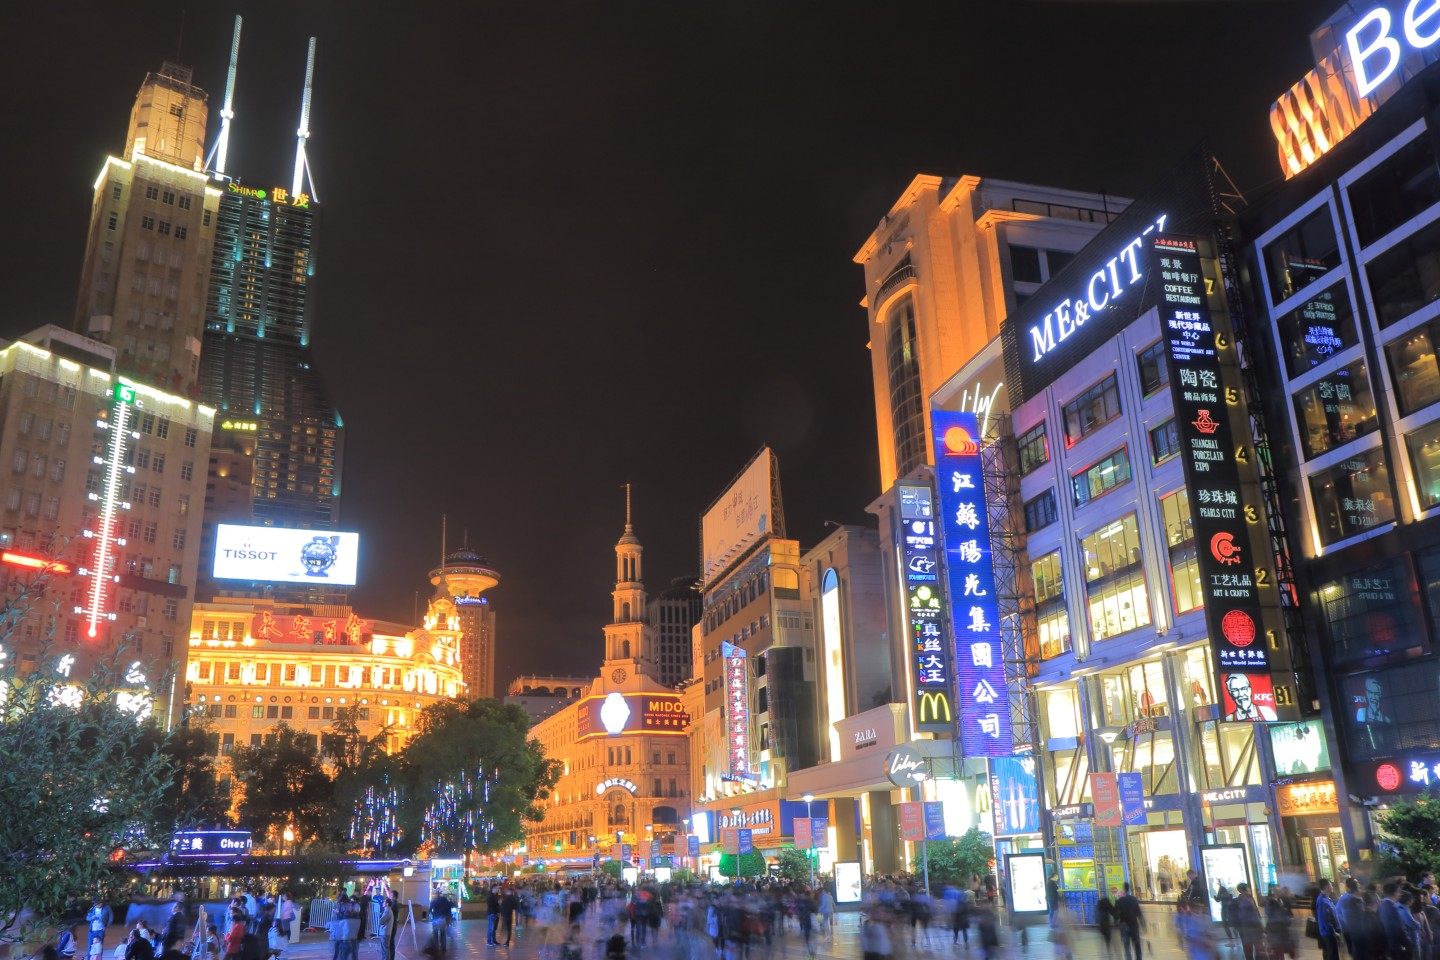 The Nanjing Road shopping street in Shanghai, China. (iStock)